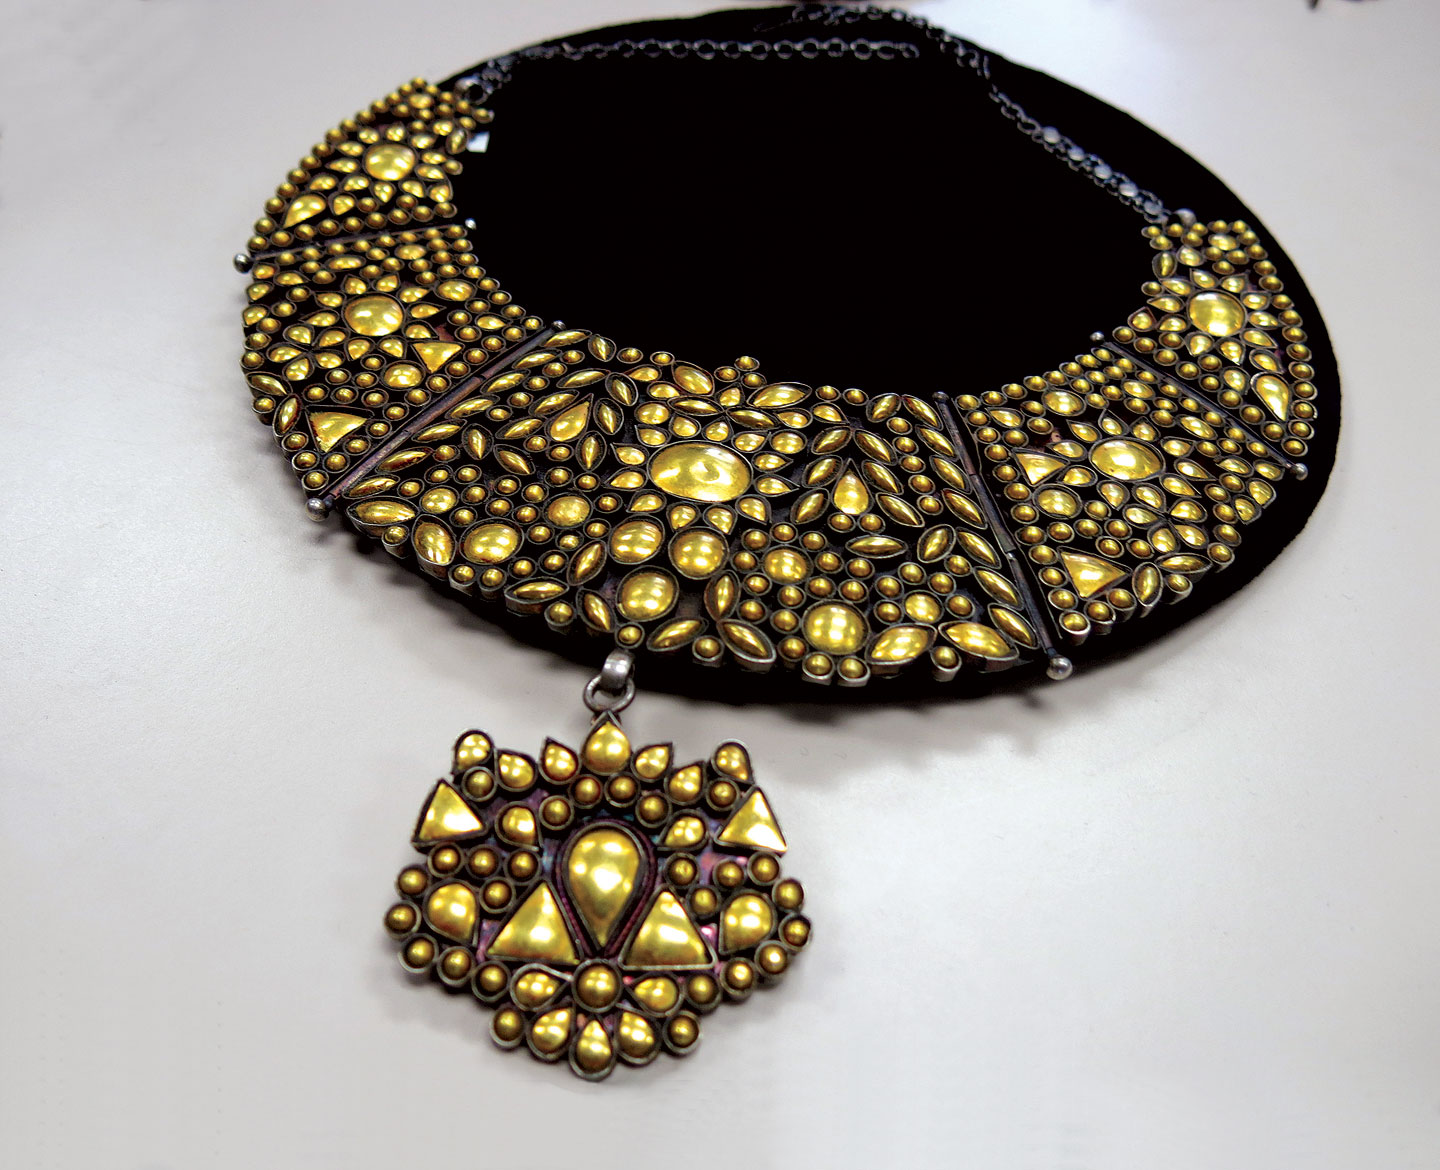 GOLD FOIL SILVER NECKLACE  (jodha)  by Bhagwan Das Soni. These designs use vintage jewelry, with silver domes covered in gold foil inserted into former gemstone settings.